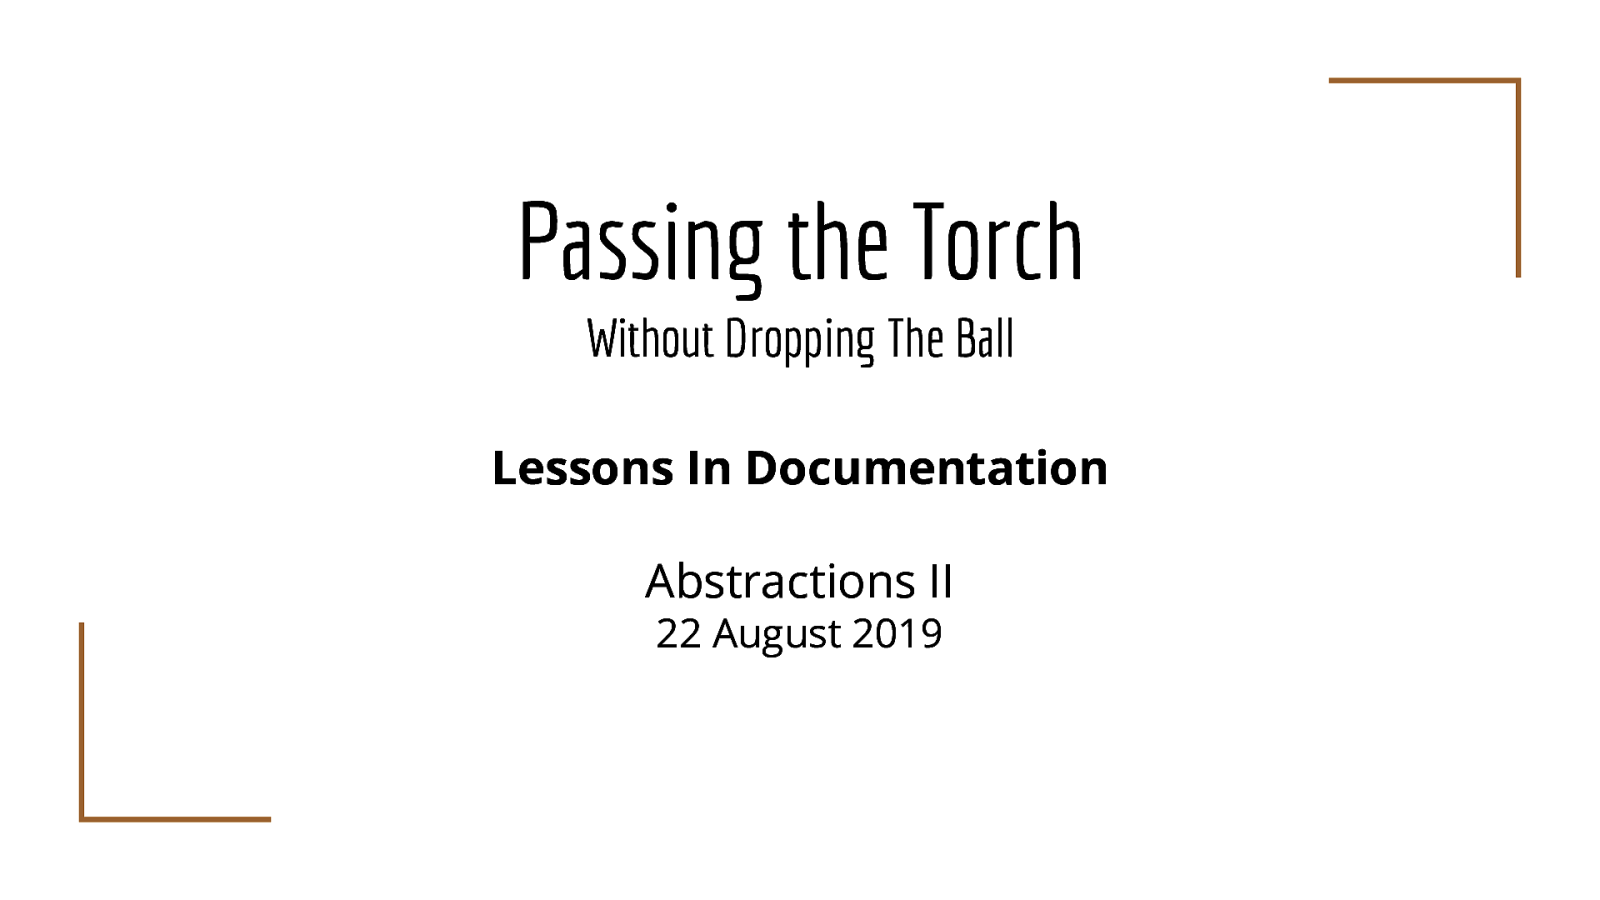 Passing the Torch Without Dropping The Ball: Lessons in Community Management